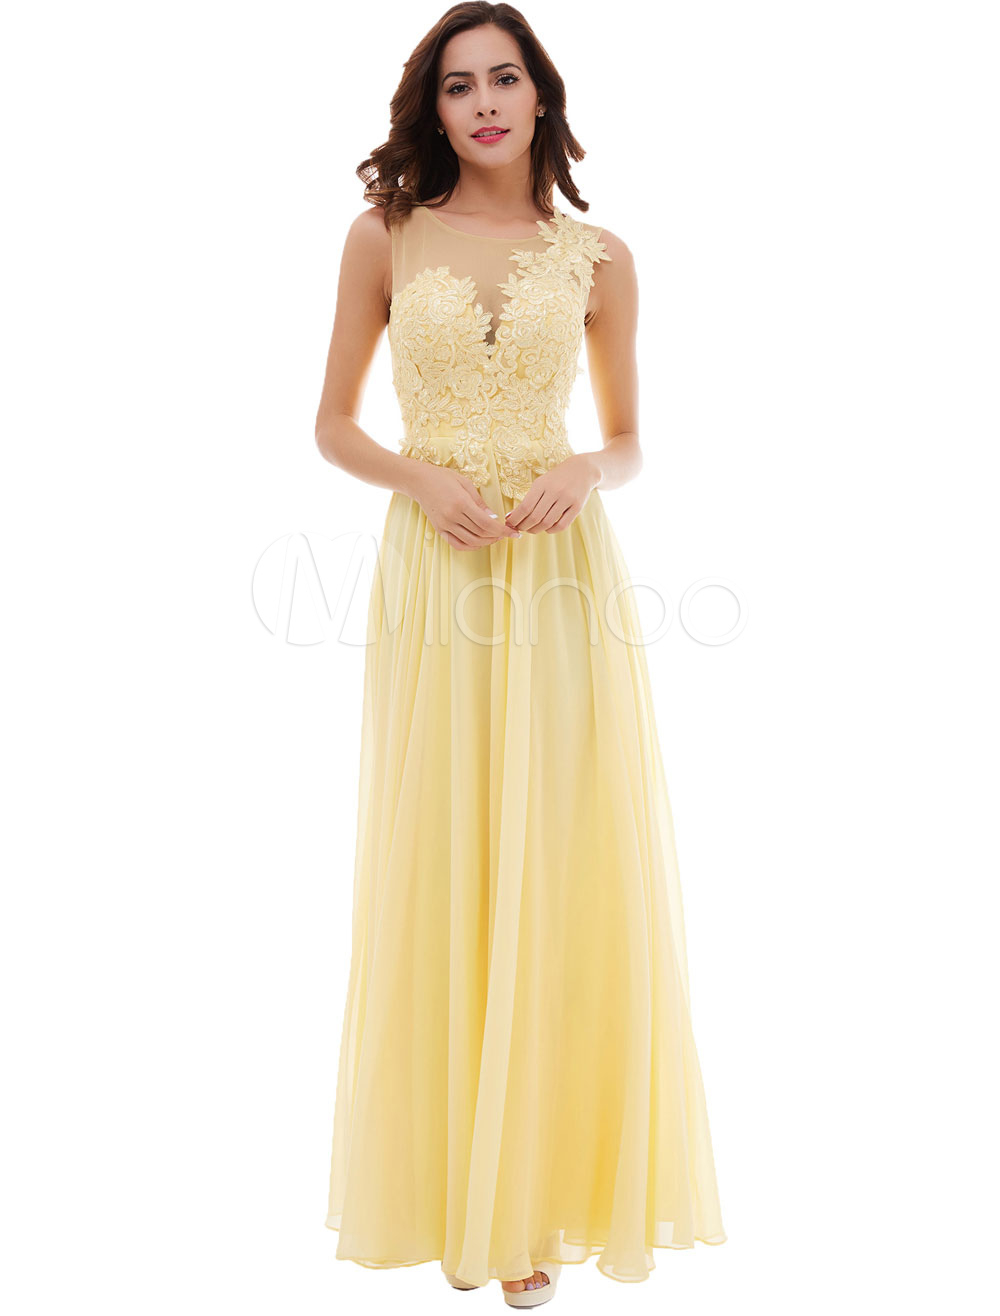 Buy Prom Dresses Daffodil Long Lace Applique Chiffon V Back Illusion Floor Length Formal Party Dresses for $67.99 in Milanoo store